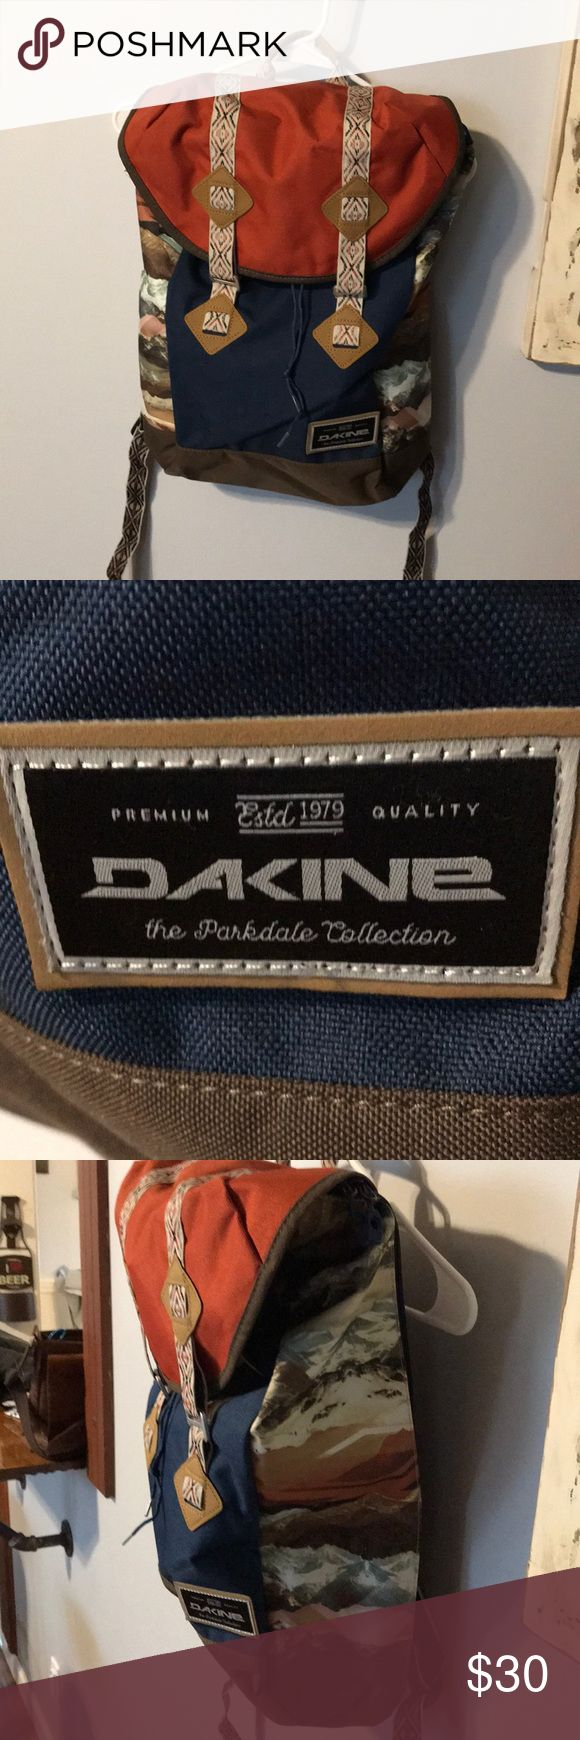 Dakine rucksack/backpack Brand new, never used. Tags were removed. Padded space for you laptop/computer, with easy zipper access from the side. Make me a reasonable offer Dakine Bags Backpacks